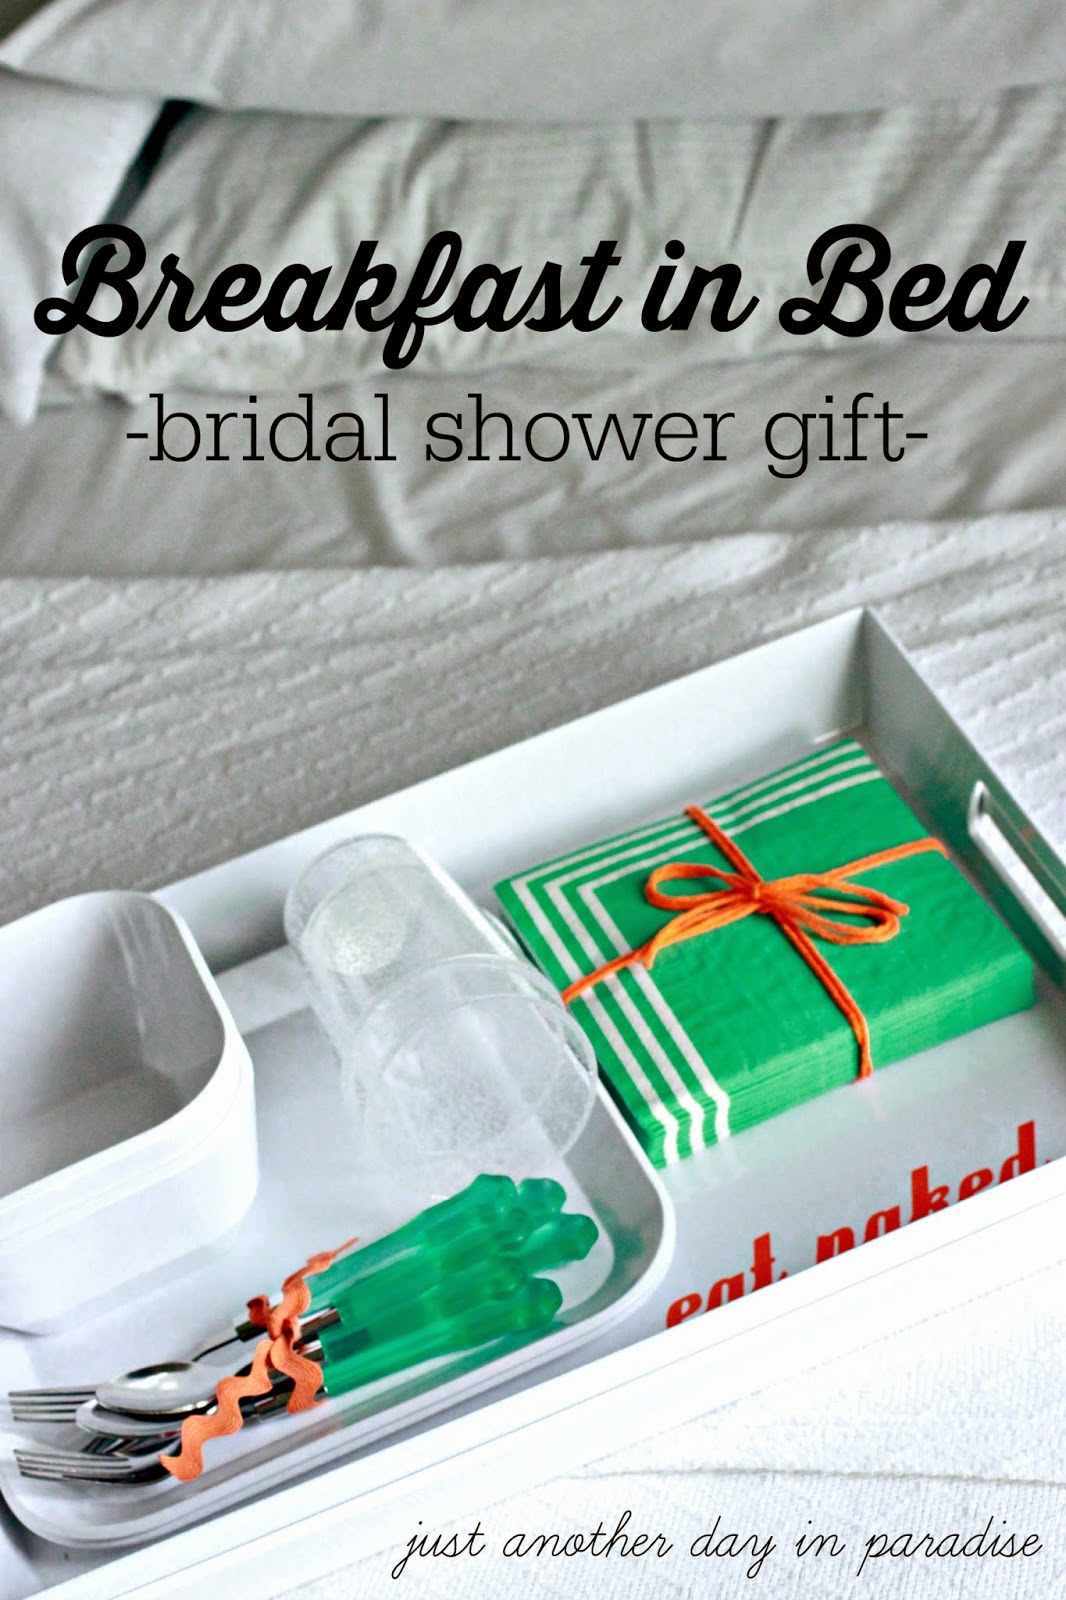 breakfast in bed bridal shower gift